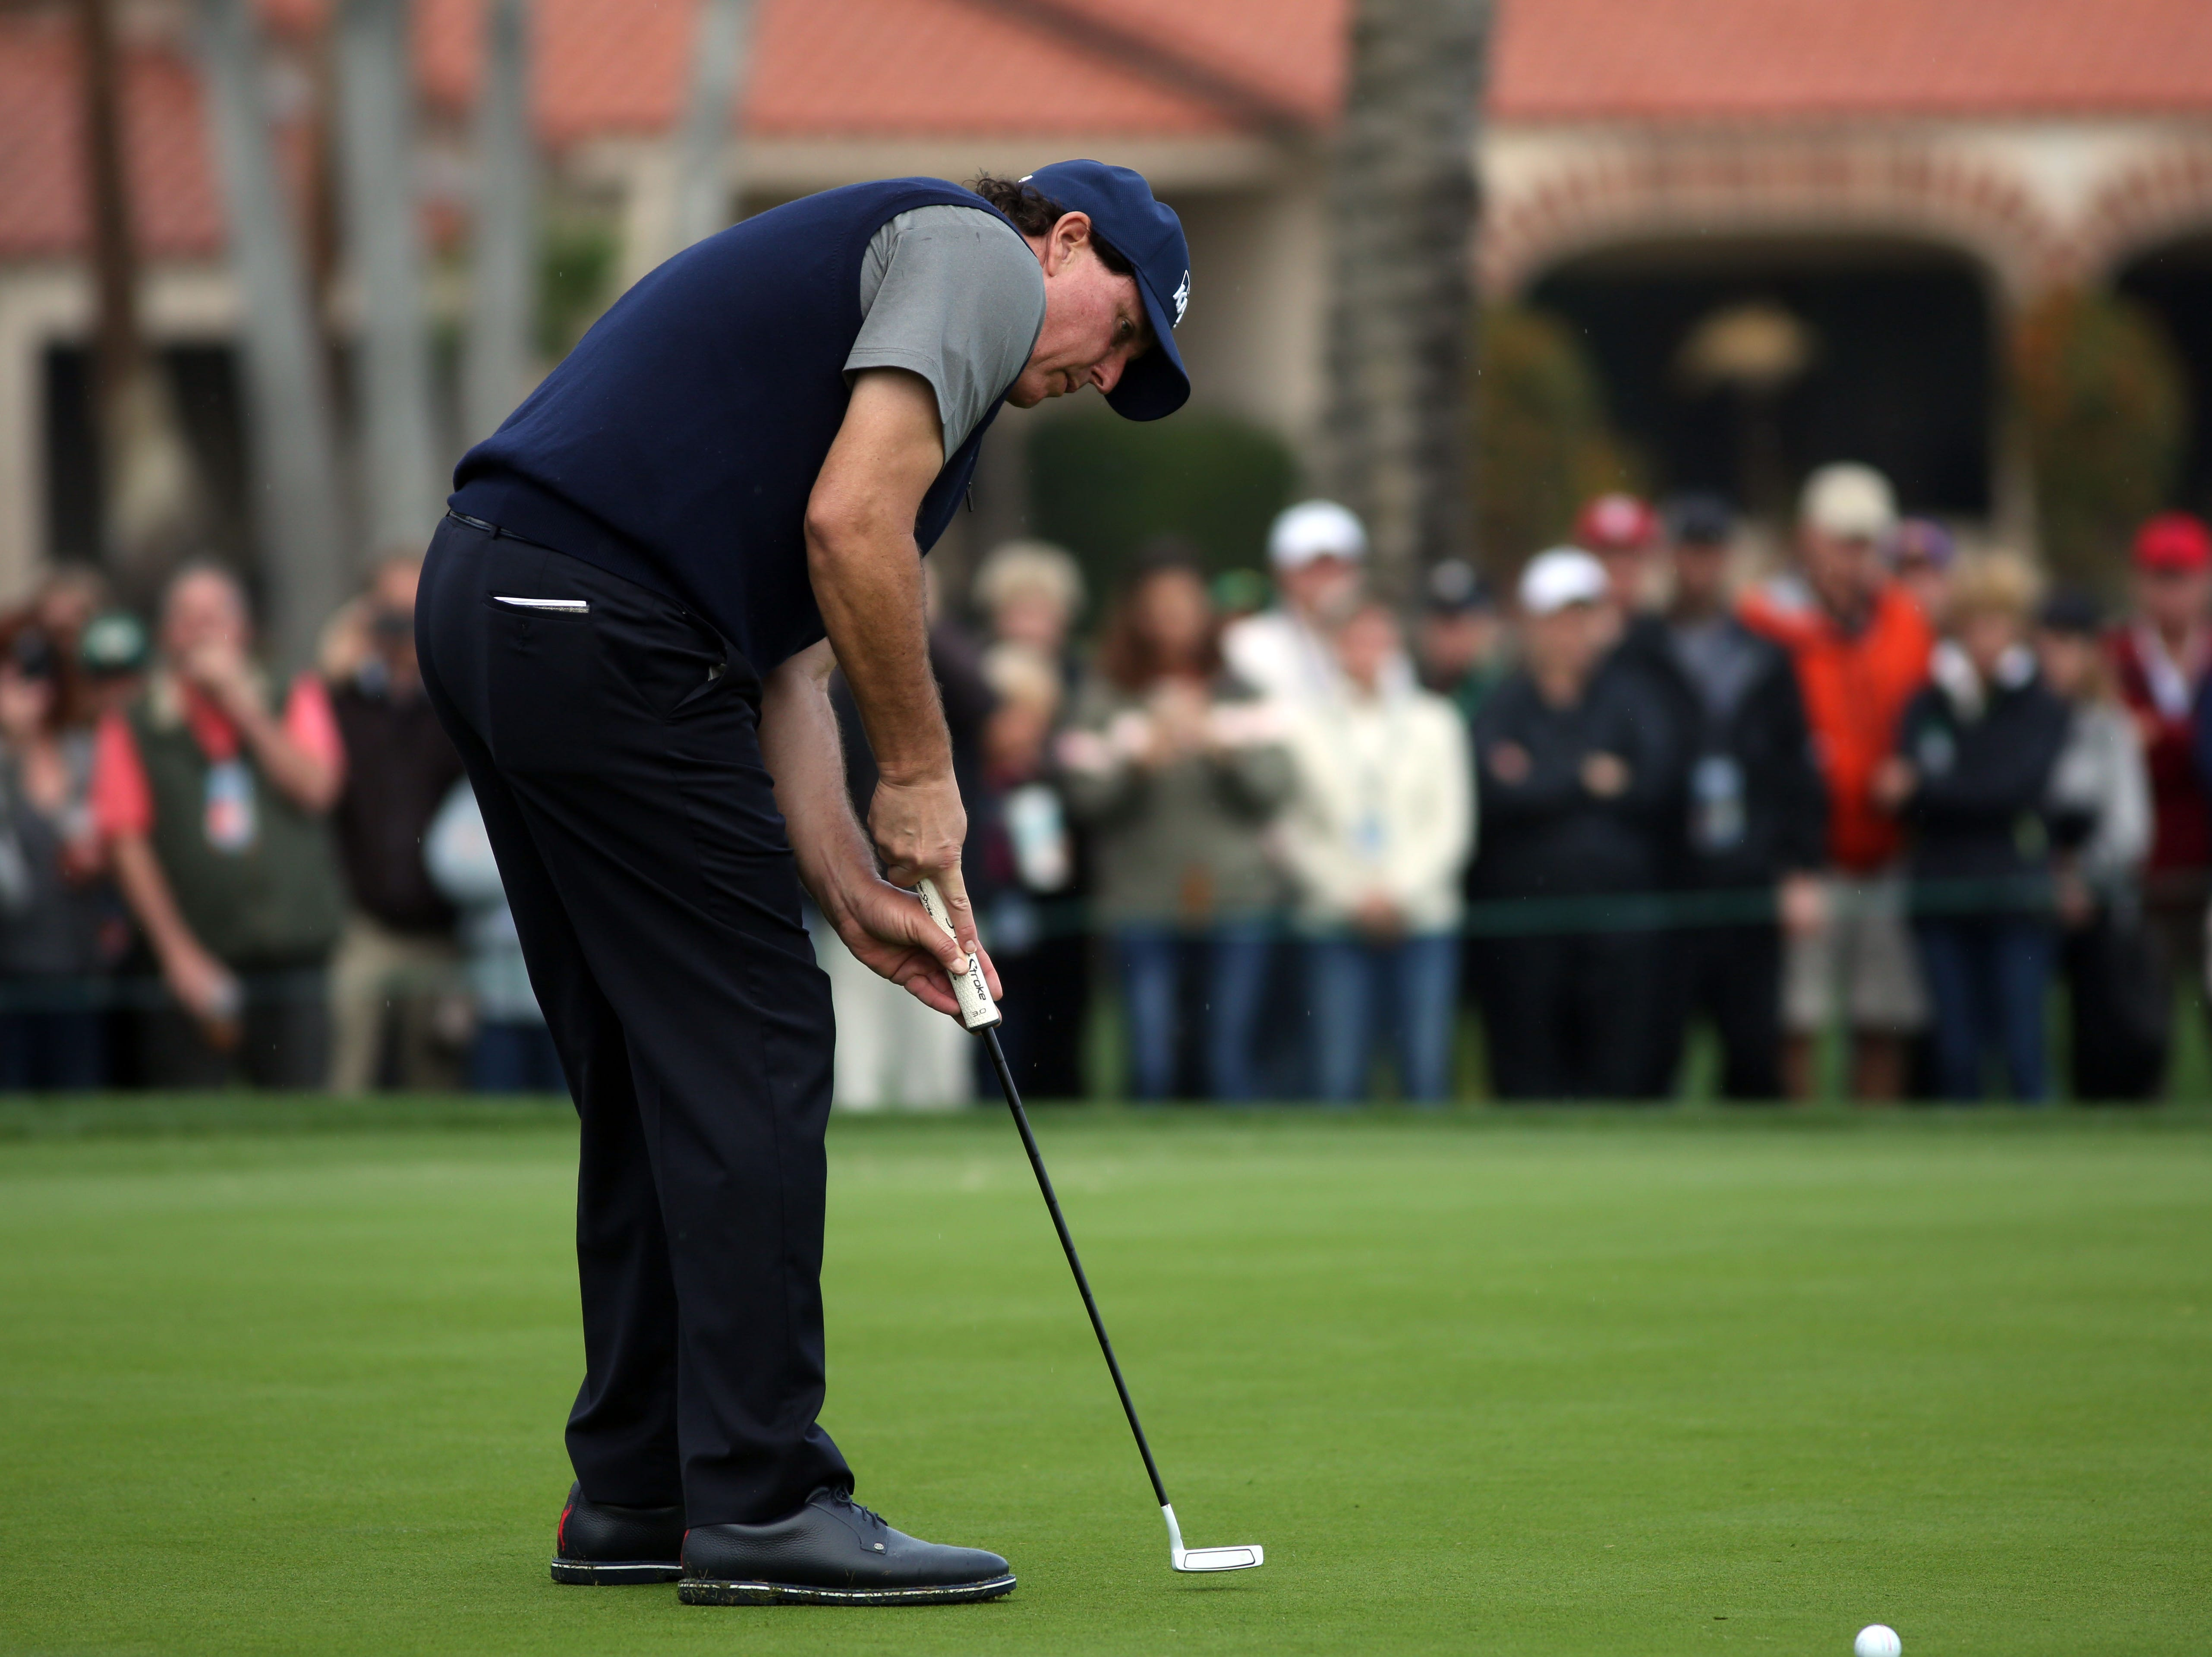 Phil Mickelson birdies 18 at La Quinta County Club during the 1st round of the Desert Classic on Thursday, January 17, 2019. Mickelson leads at the end of the day with 12 under.